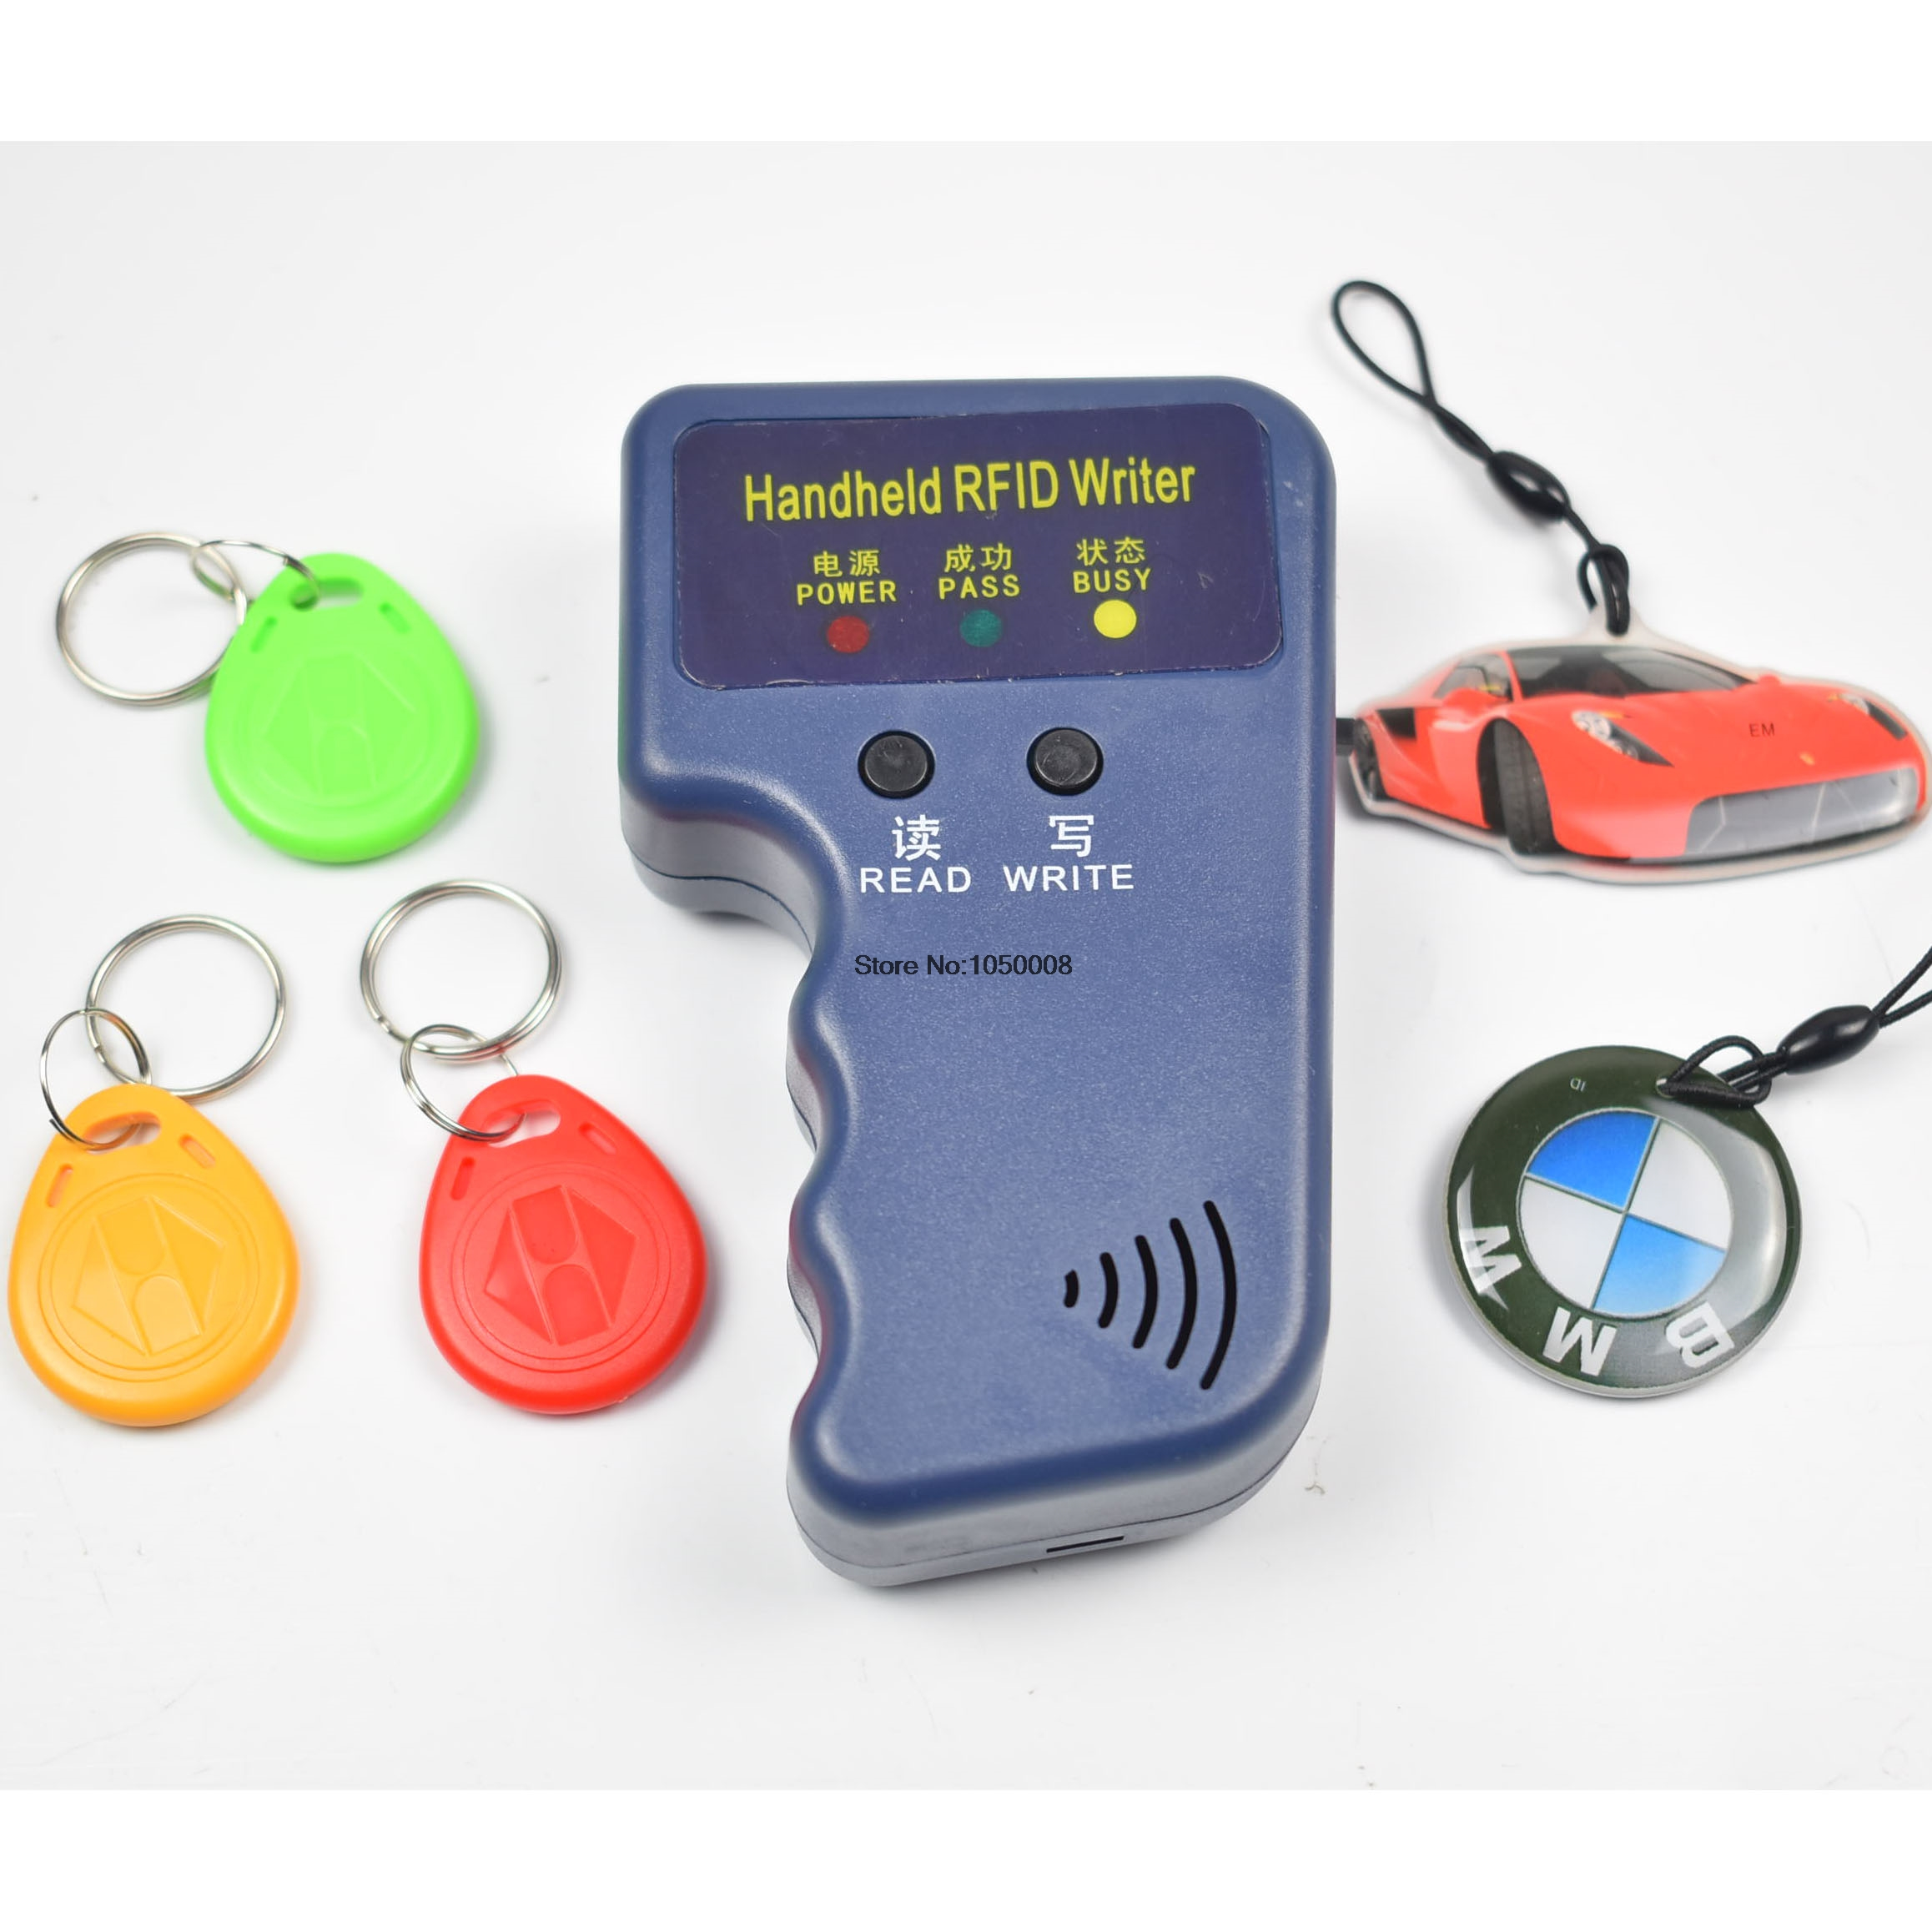 125Khz Handheld RFID ID Card Copier/ Reader/Writer Duplicator Programmer+5 Pcs EM4305 T5577 Rewritable ID Keyfobs Tags Card